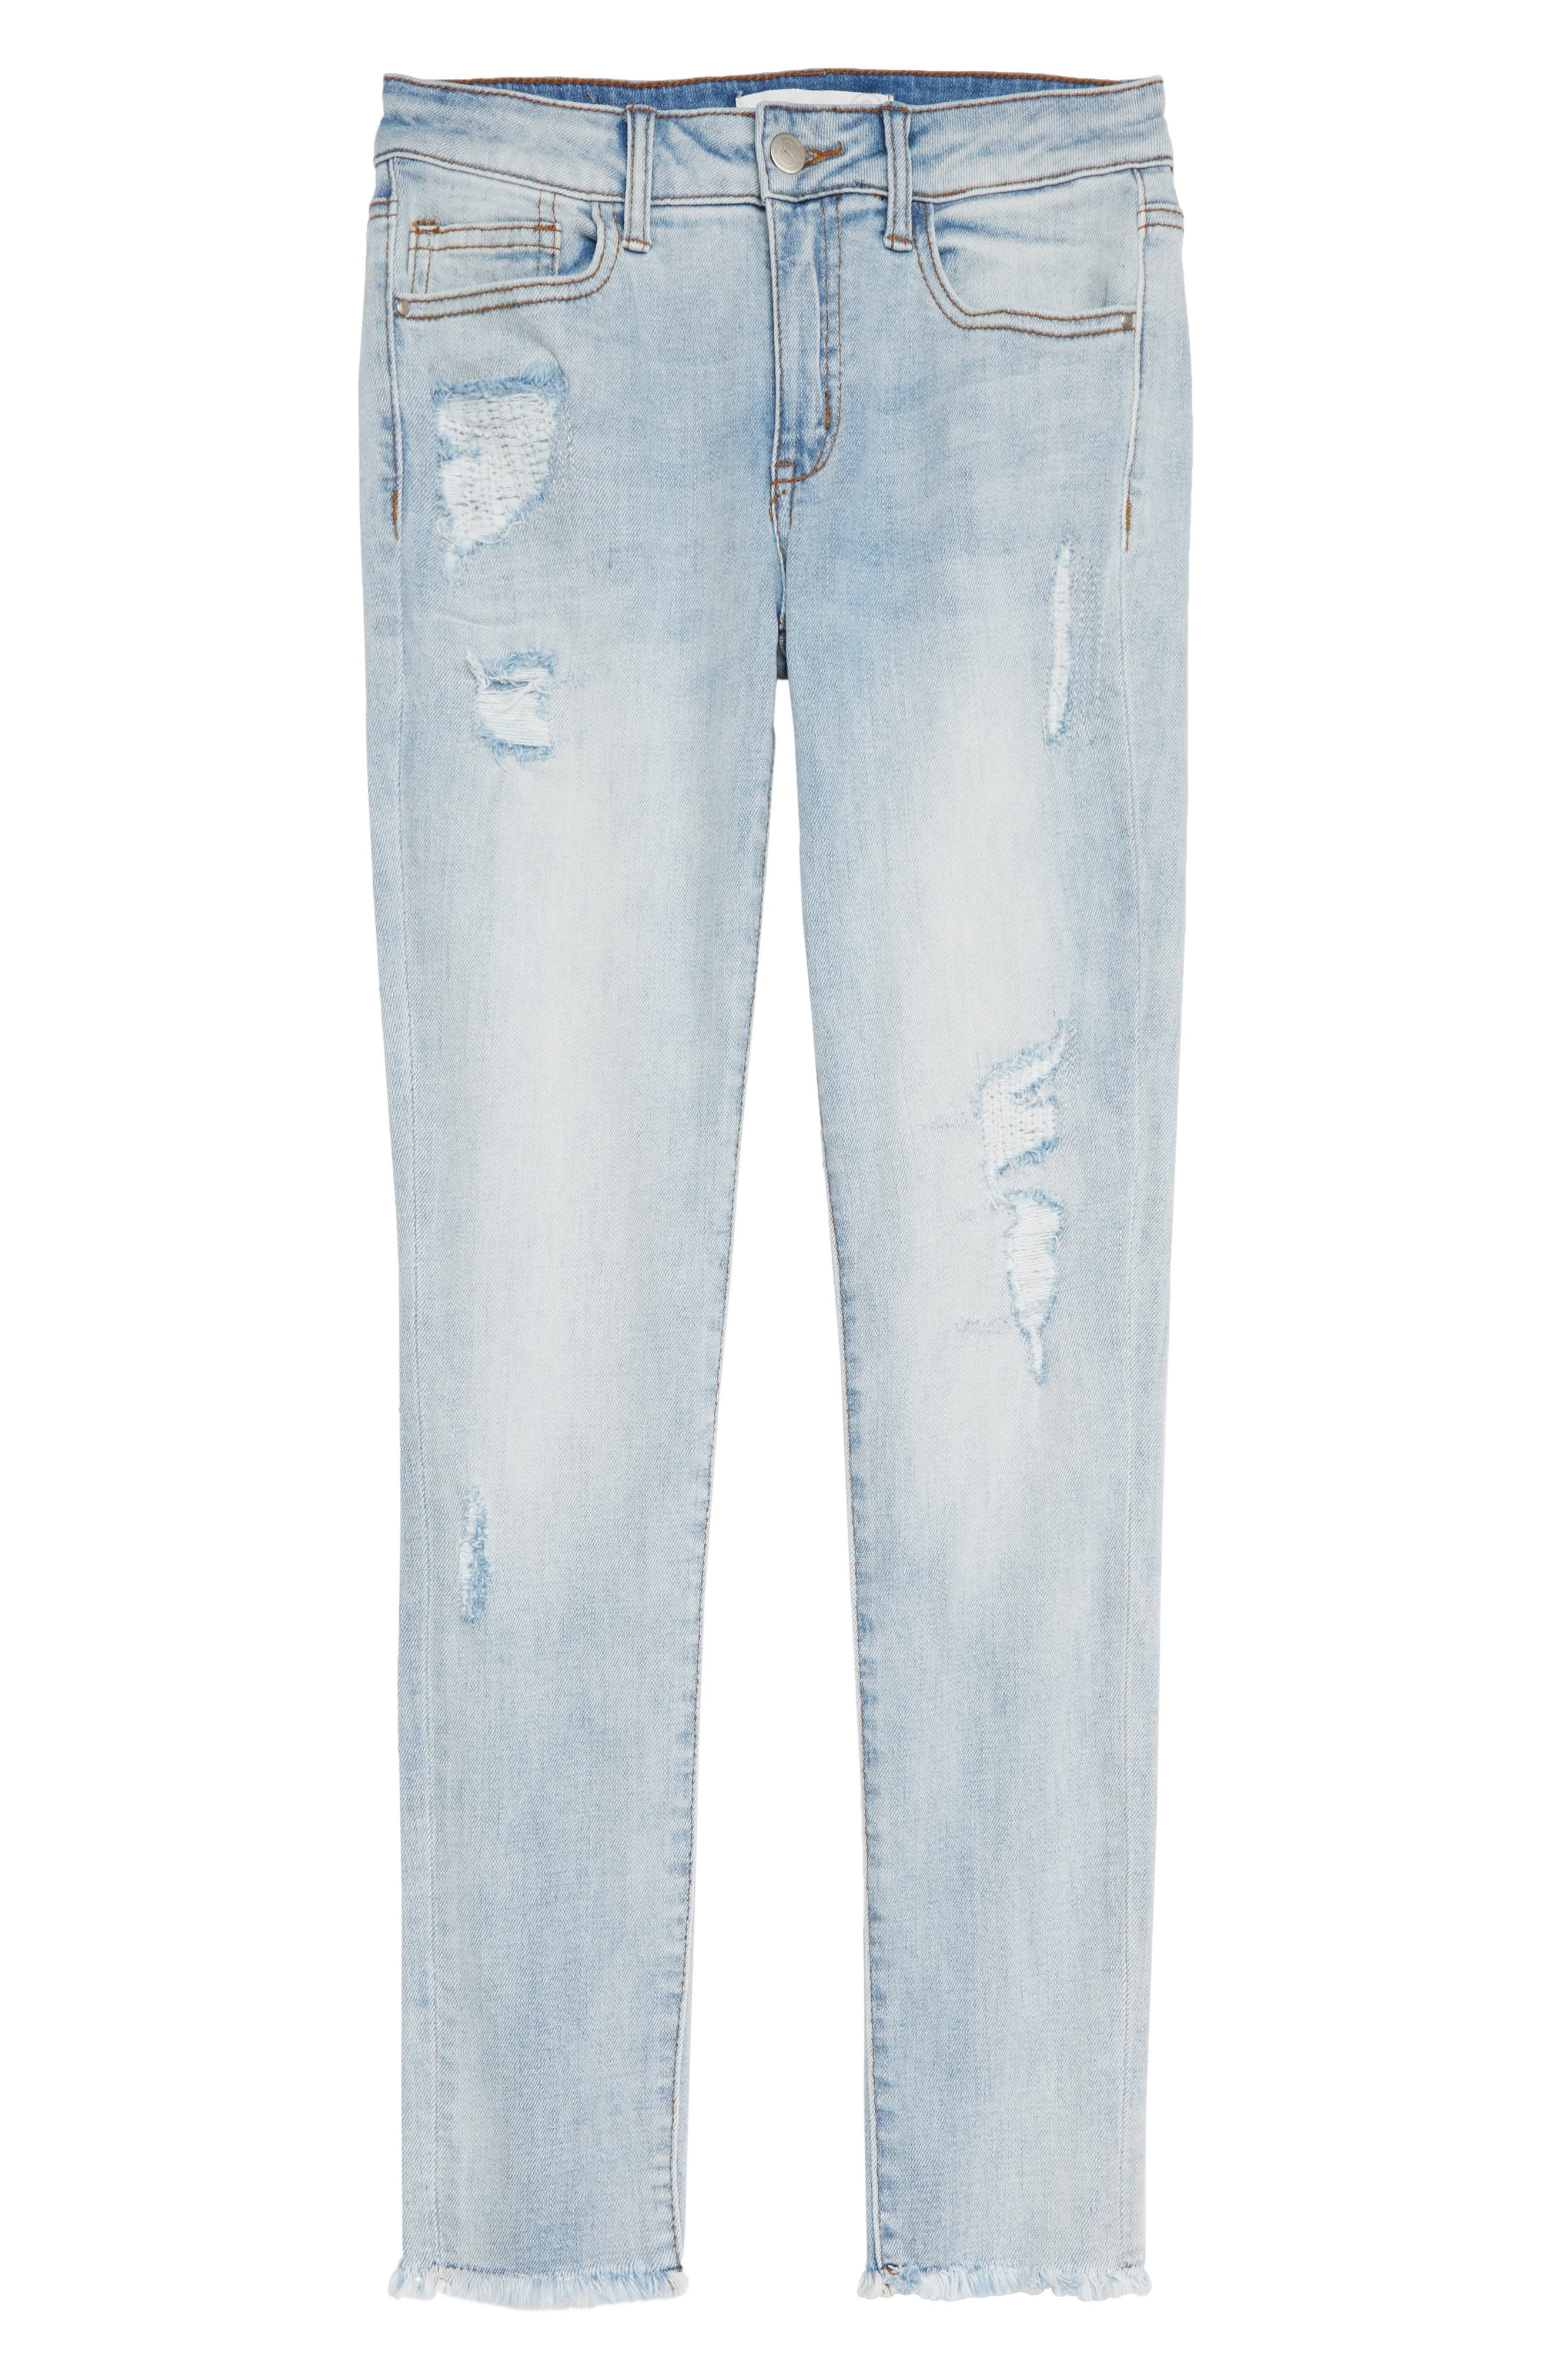 Repaired Girlfriend Jeans,                             Main thumbnail 1, color,                             Faded Wash